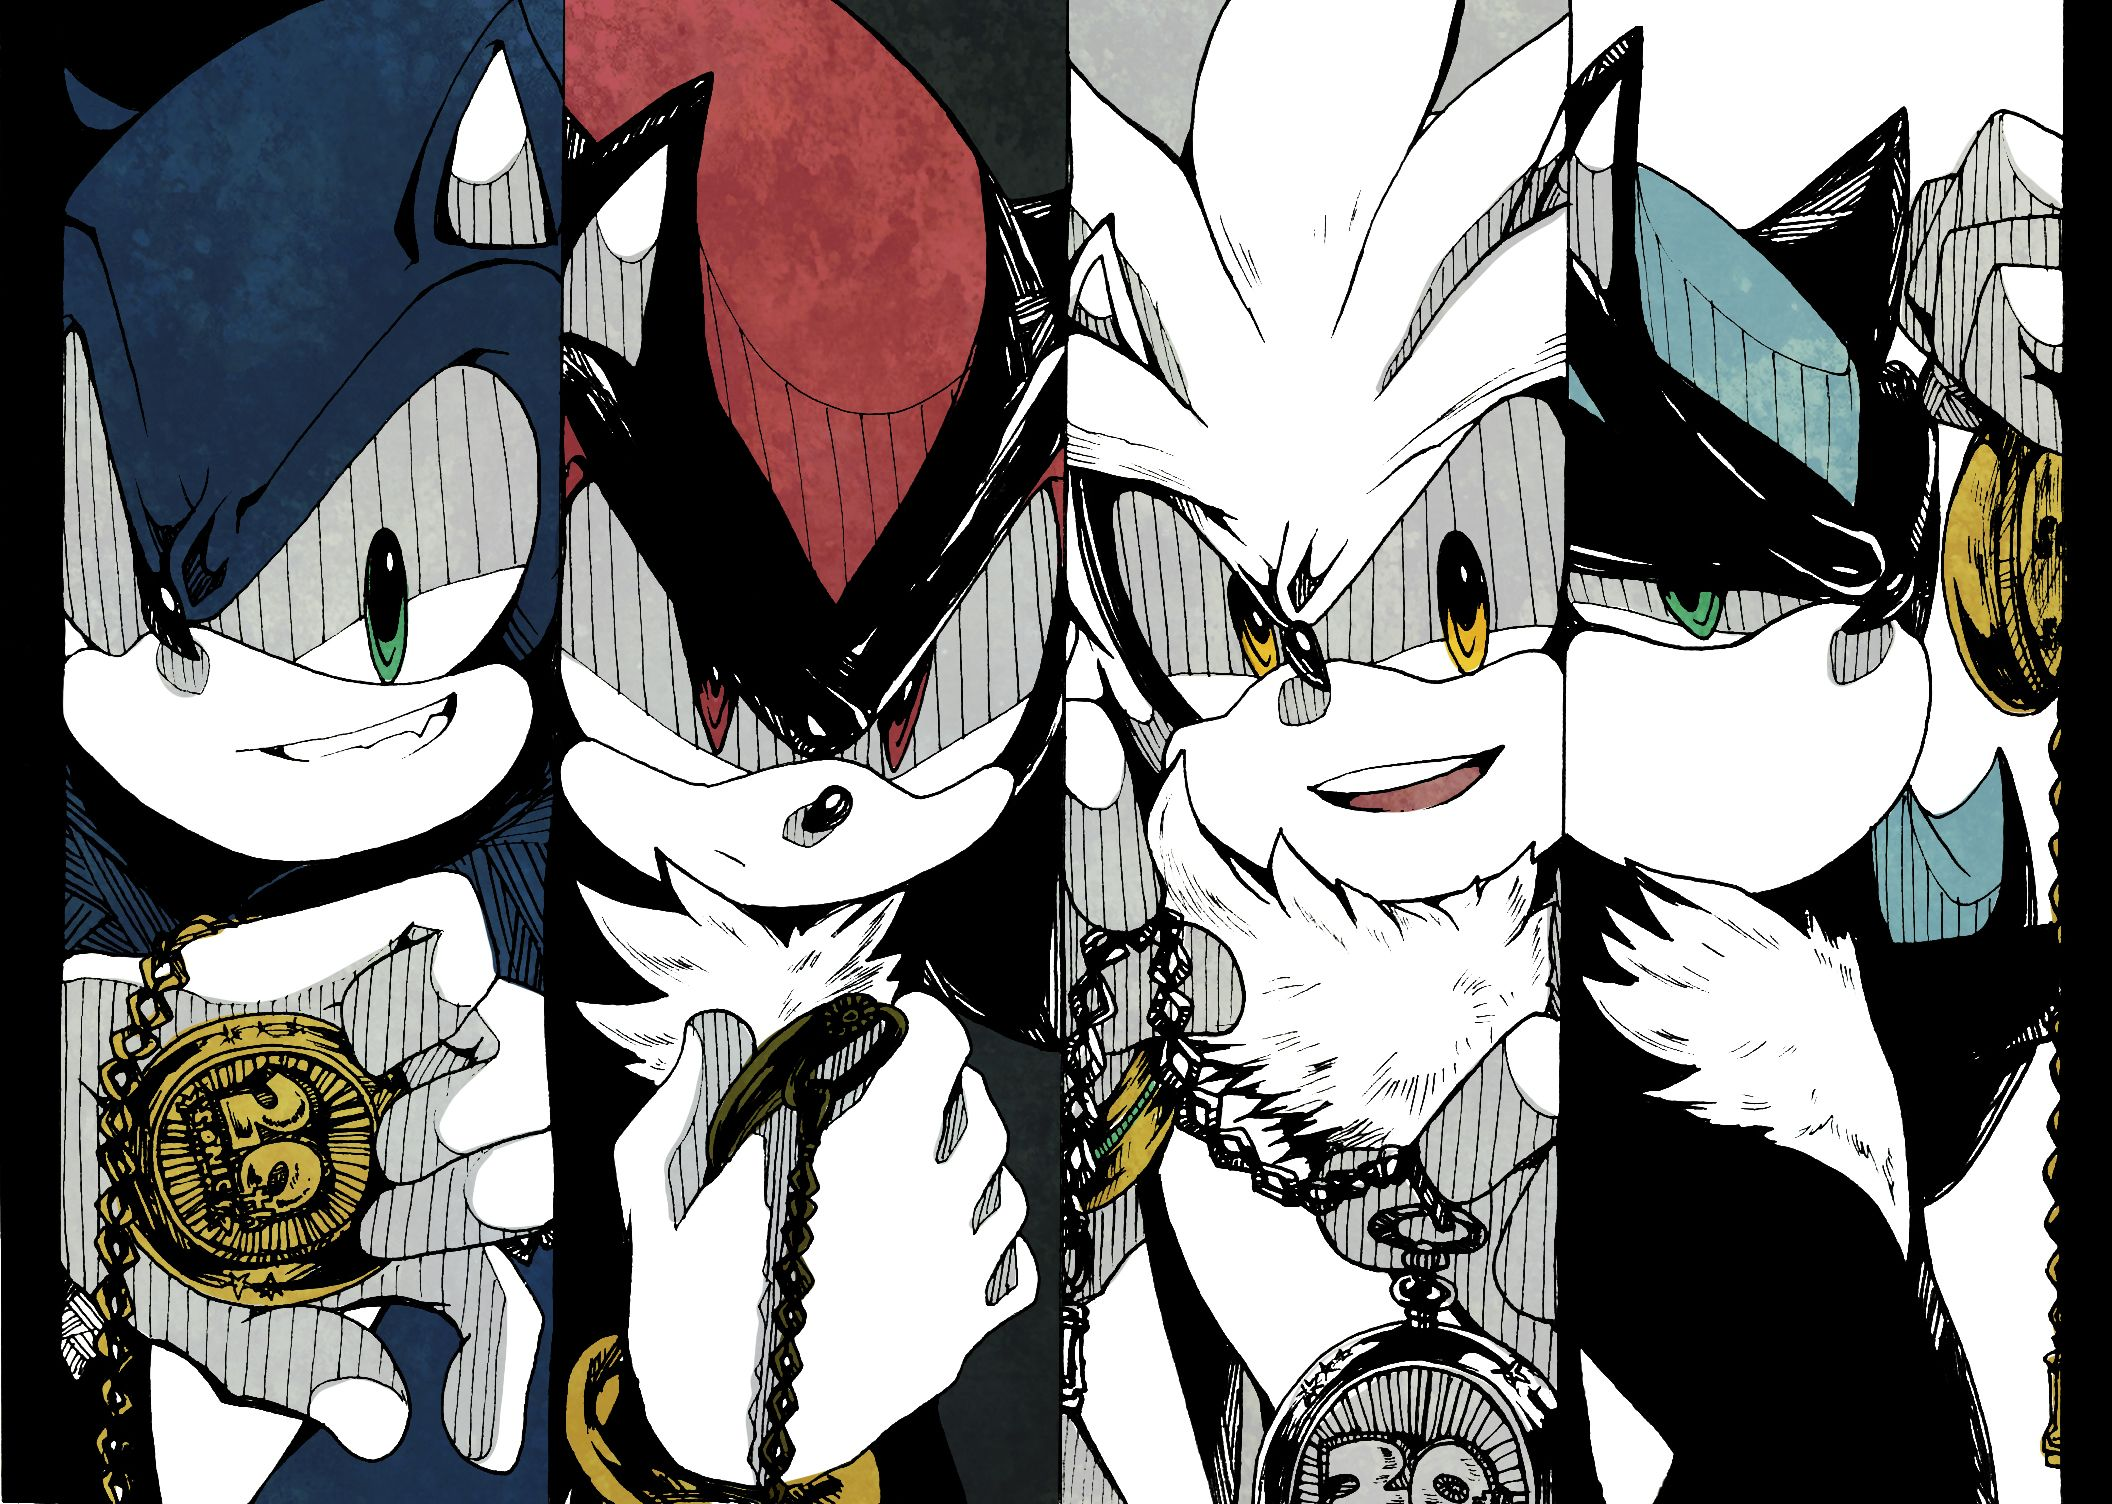 Silver The Hedgehog - Google Search